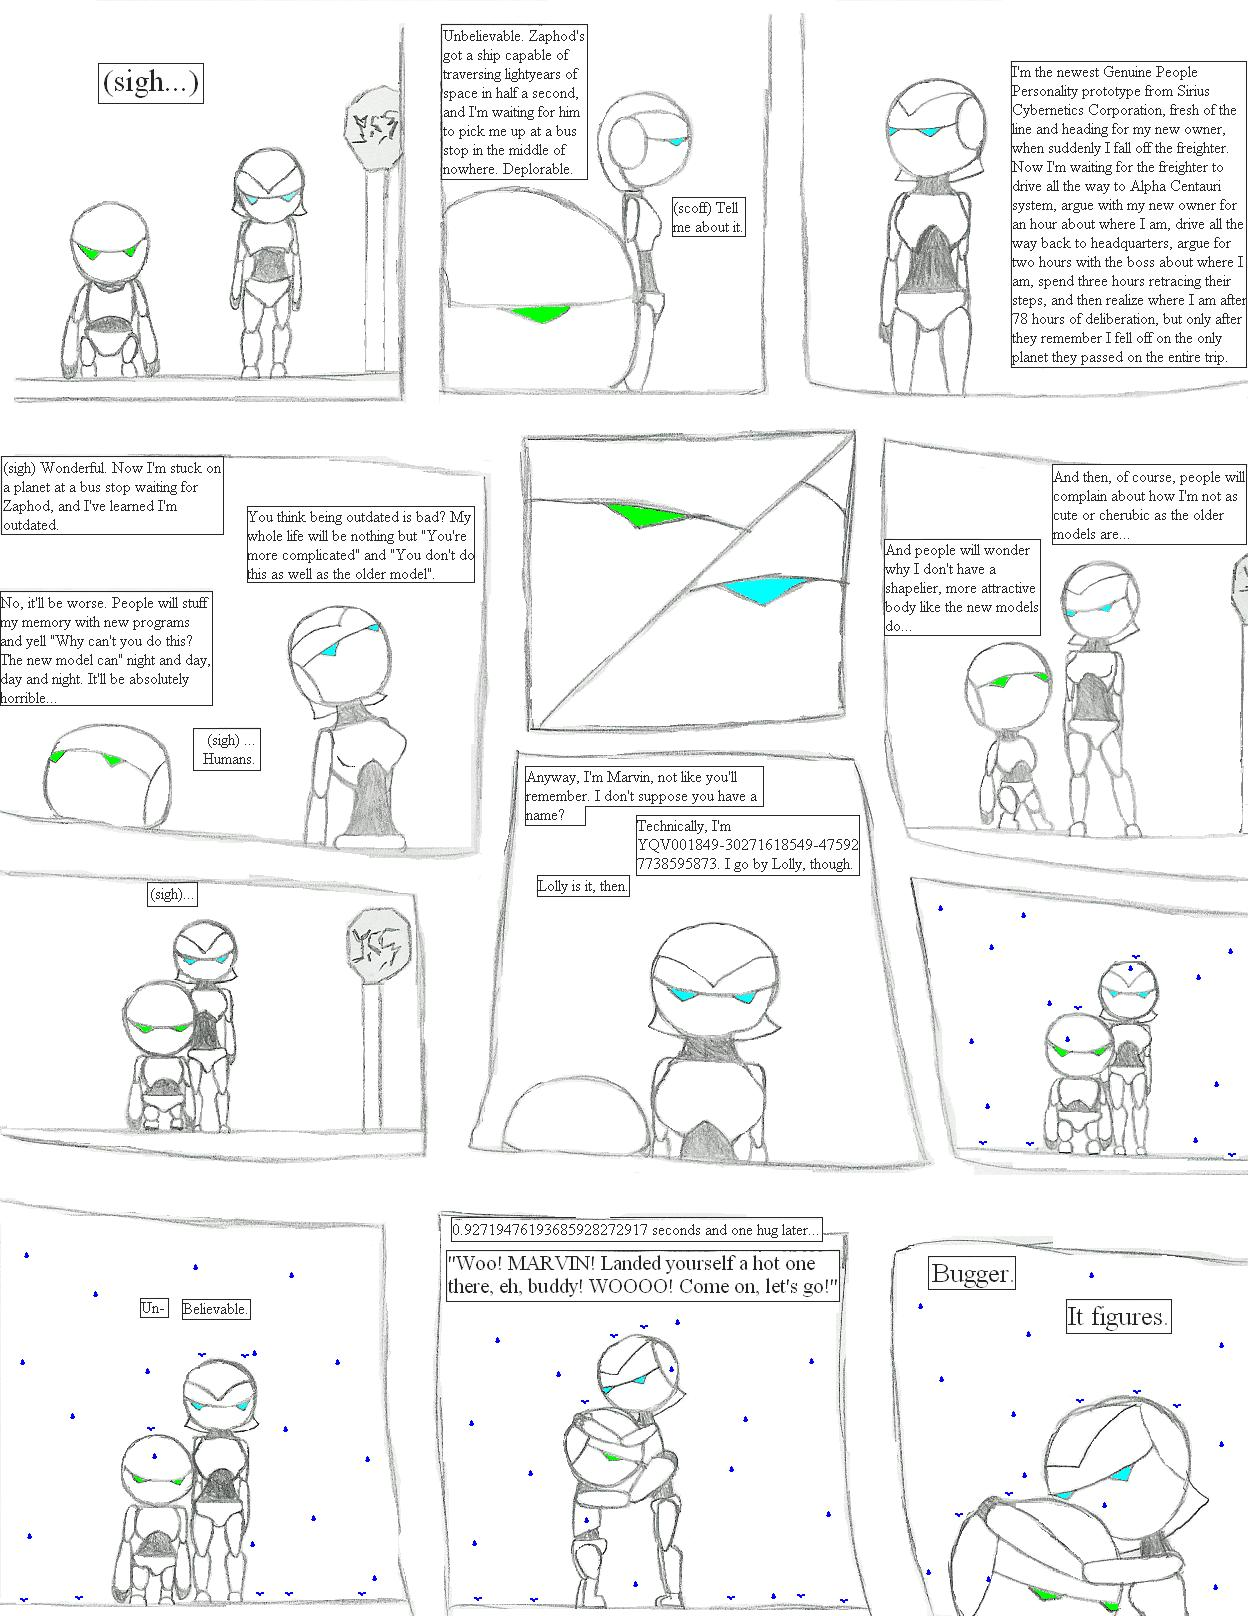 Marvin's Comic by CharonTheSabercat